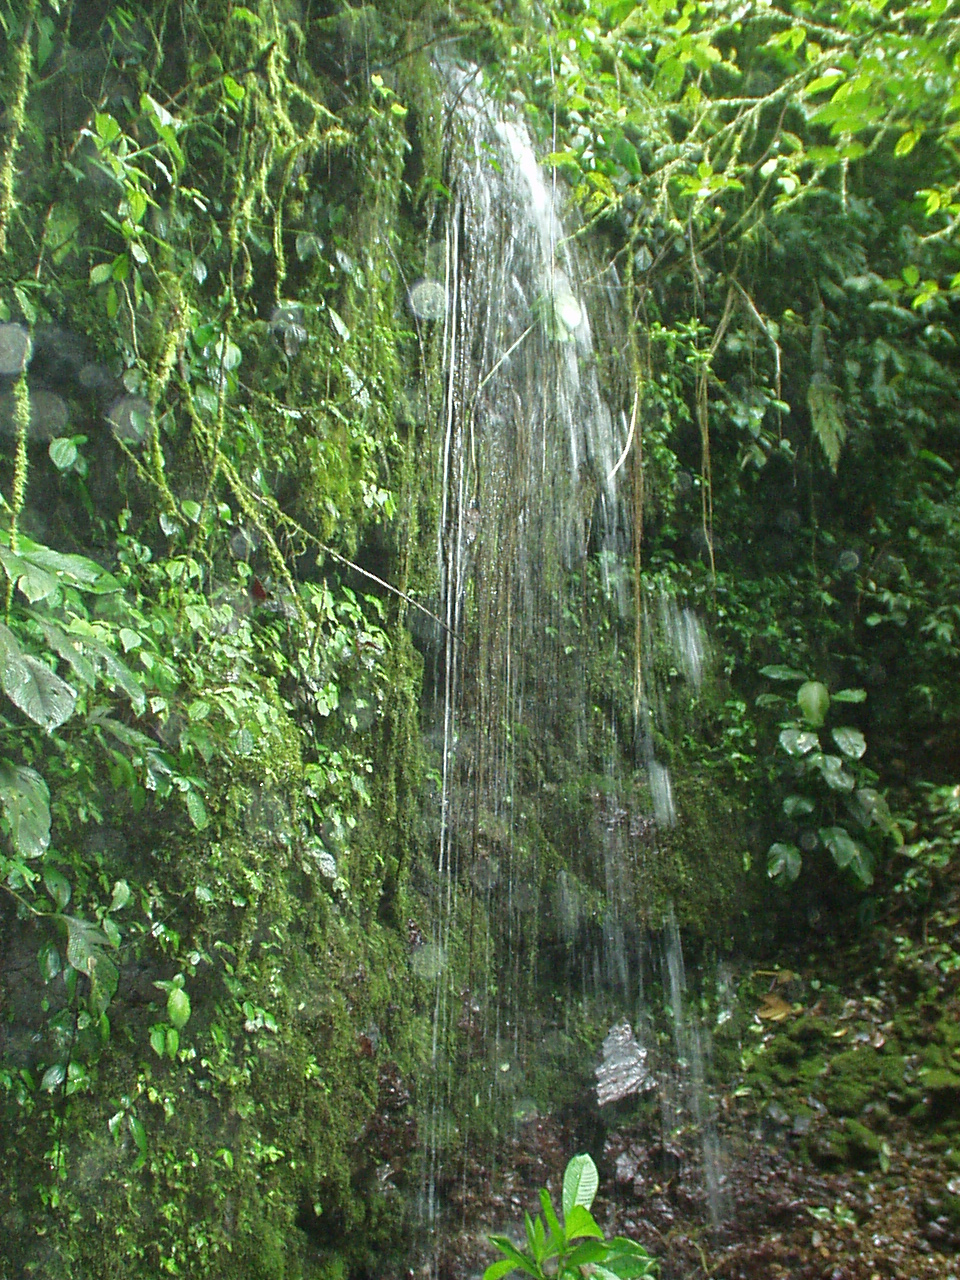 Hike to the   Waterfall on The Reserve; 2 hour roundtrip. $5 or ¢3,000 colones.